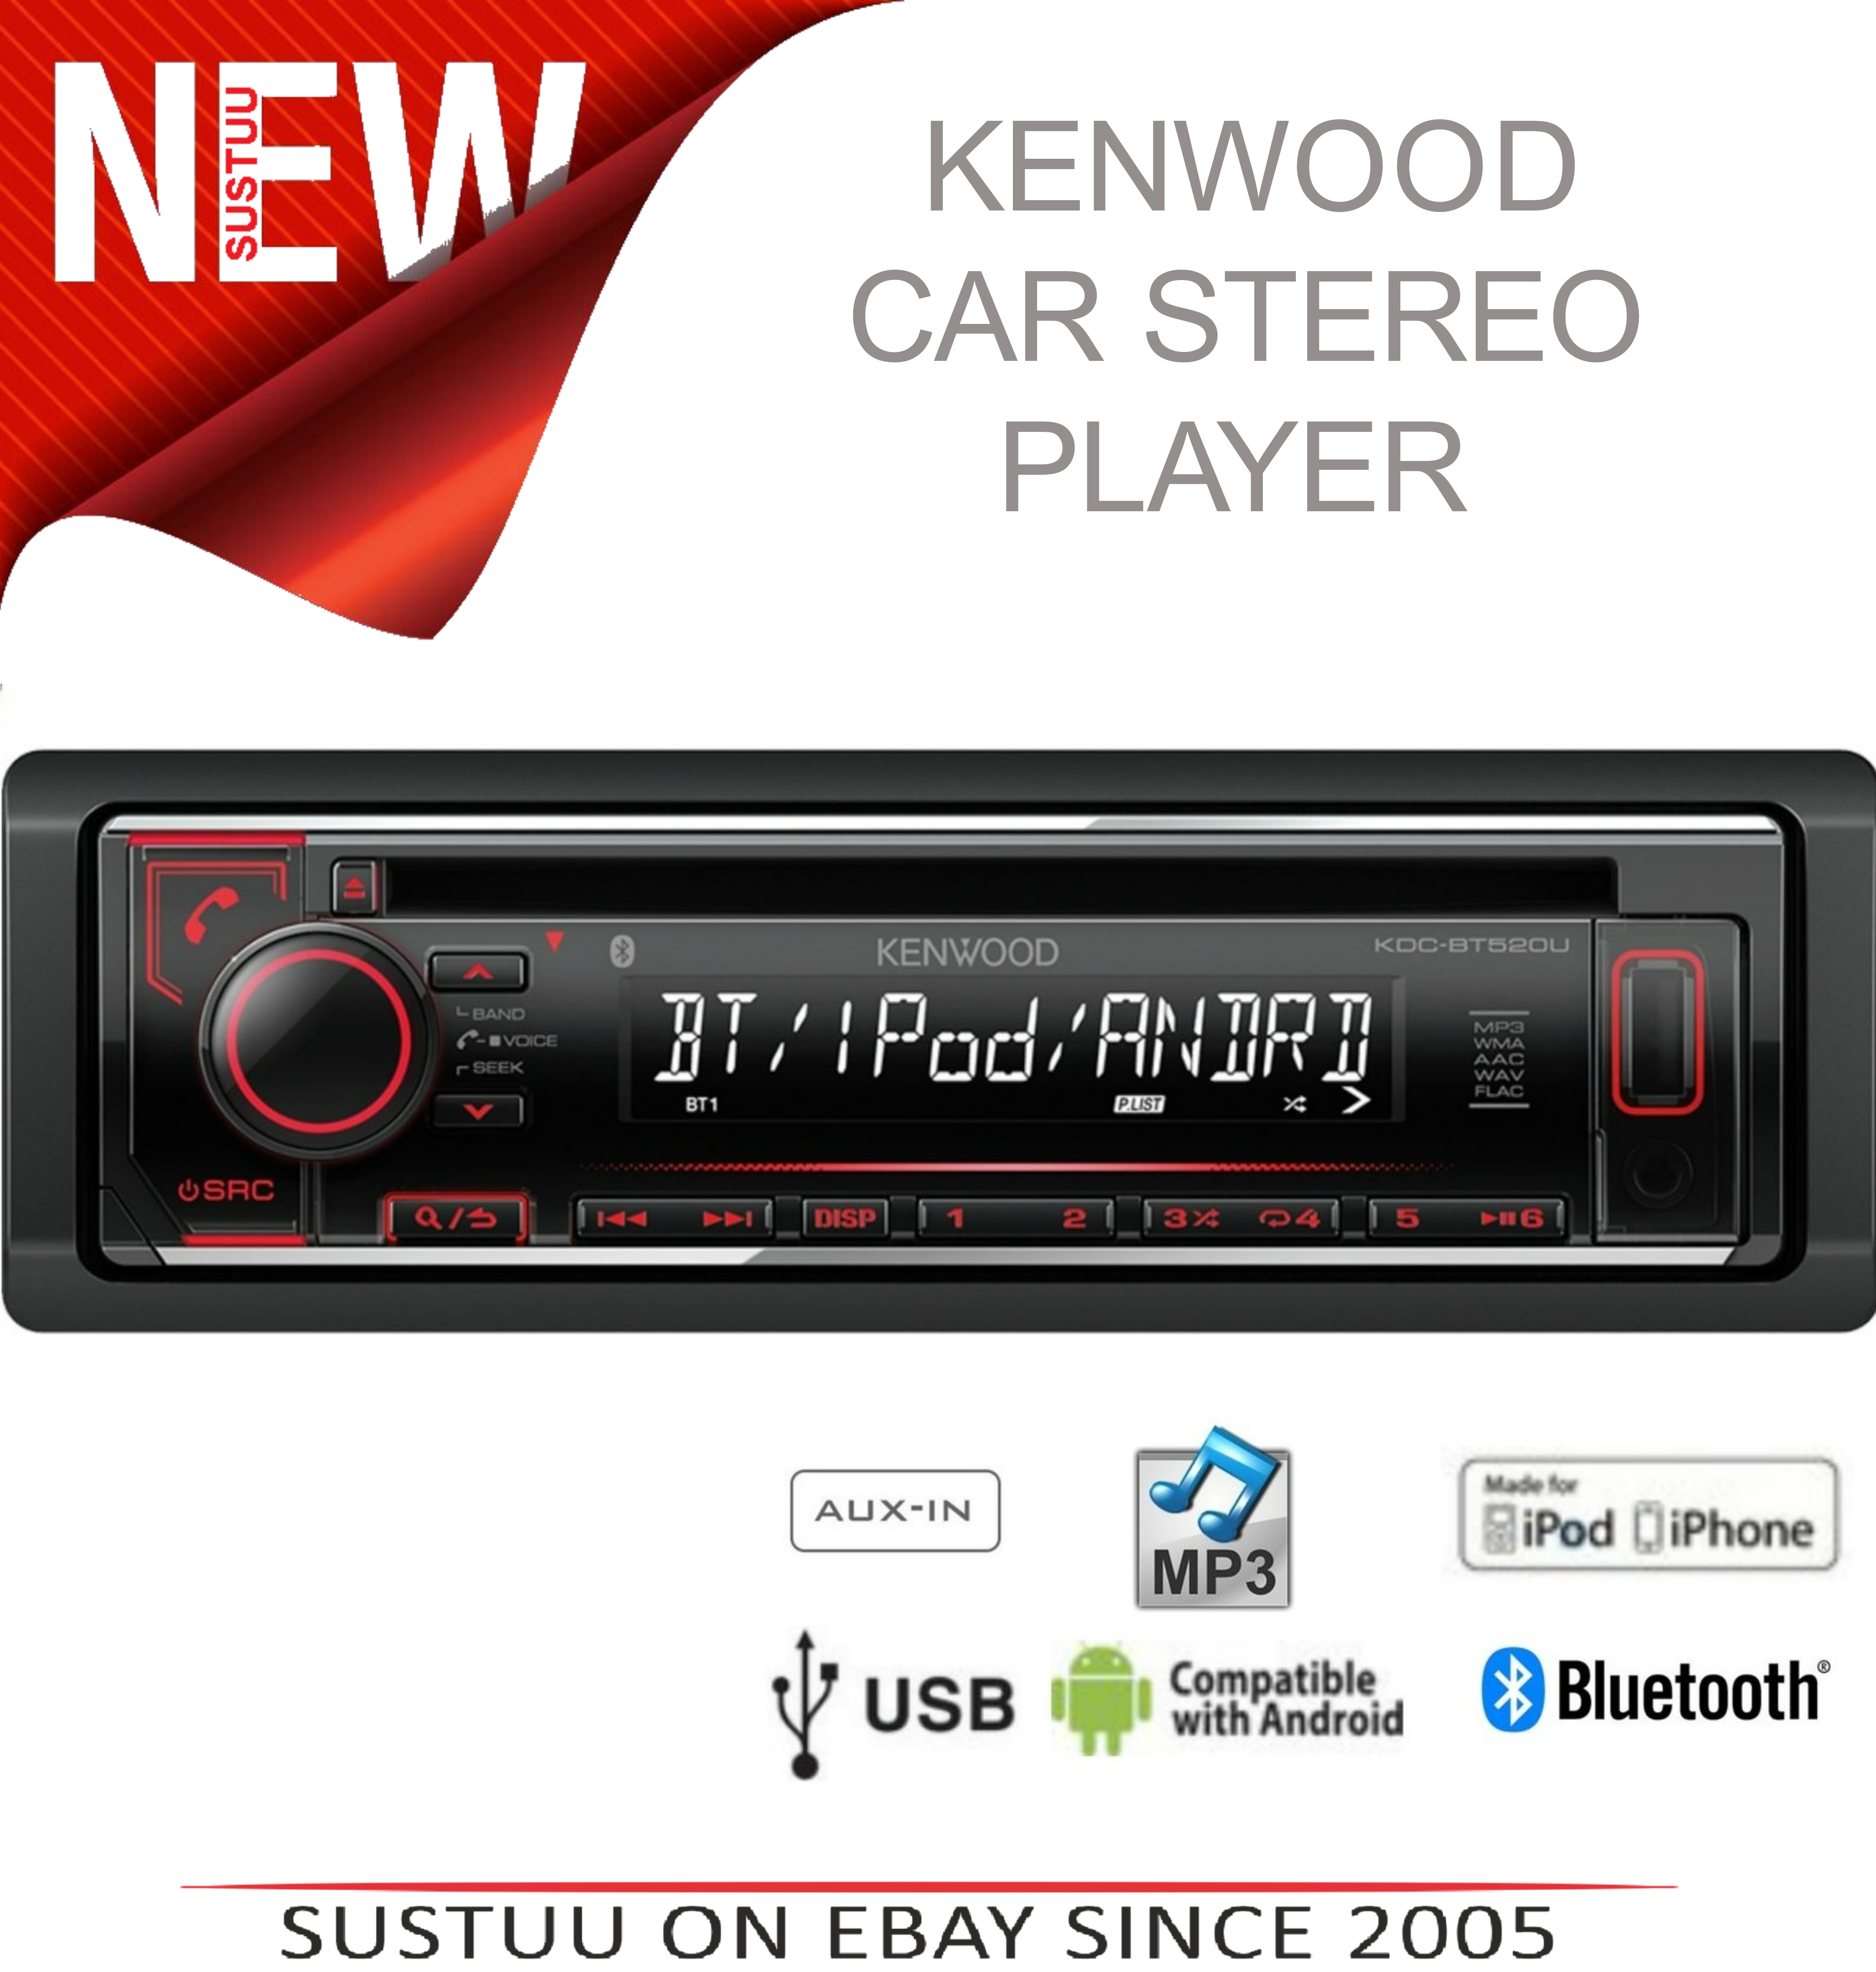 Kenwood Car Audio Support Phone Number